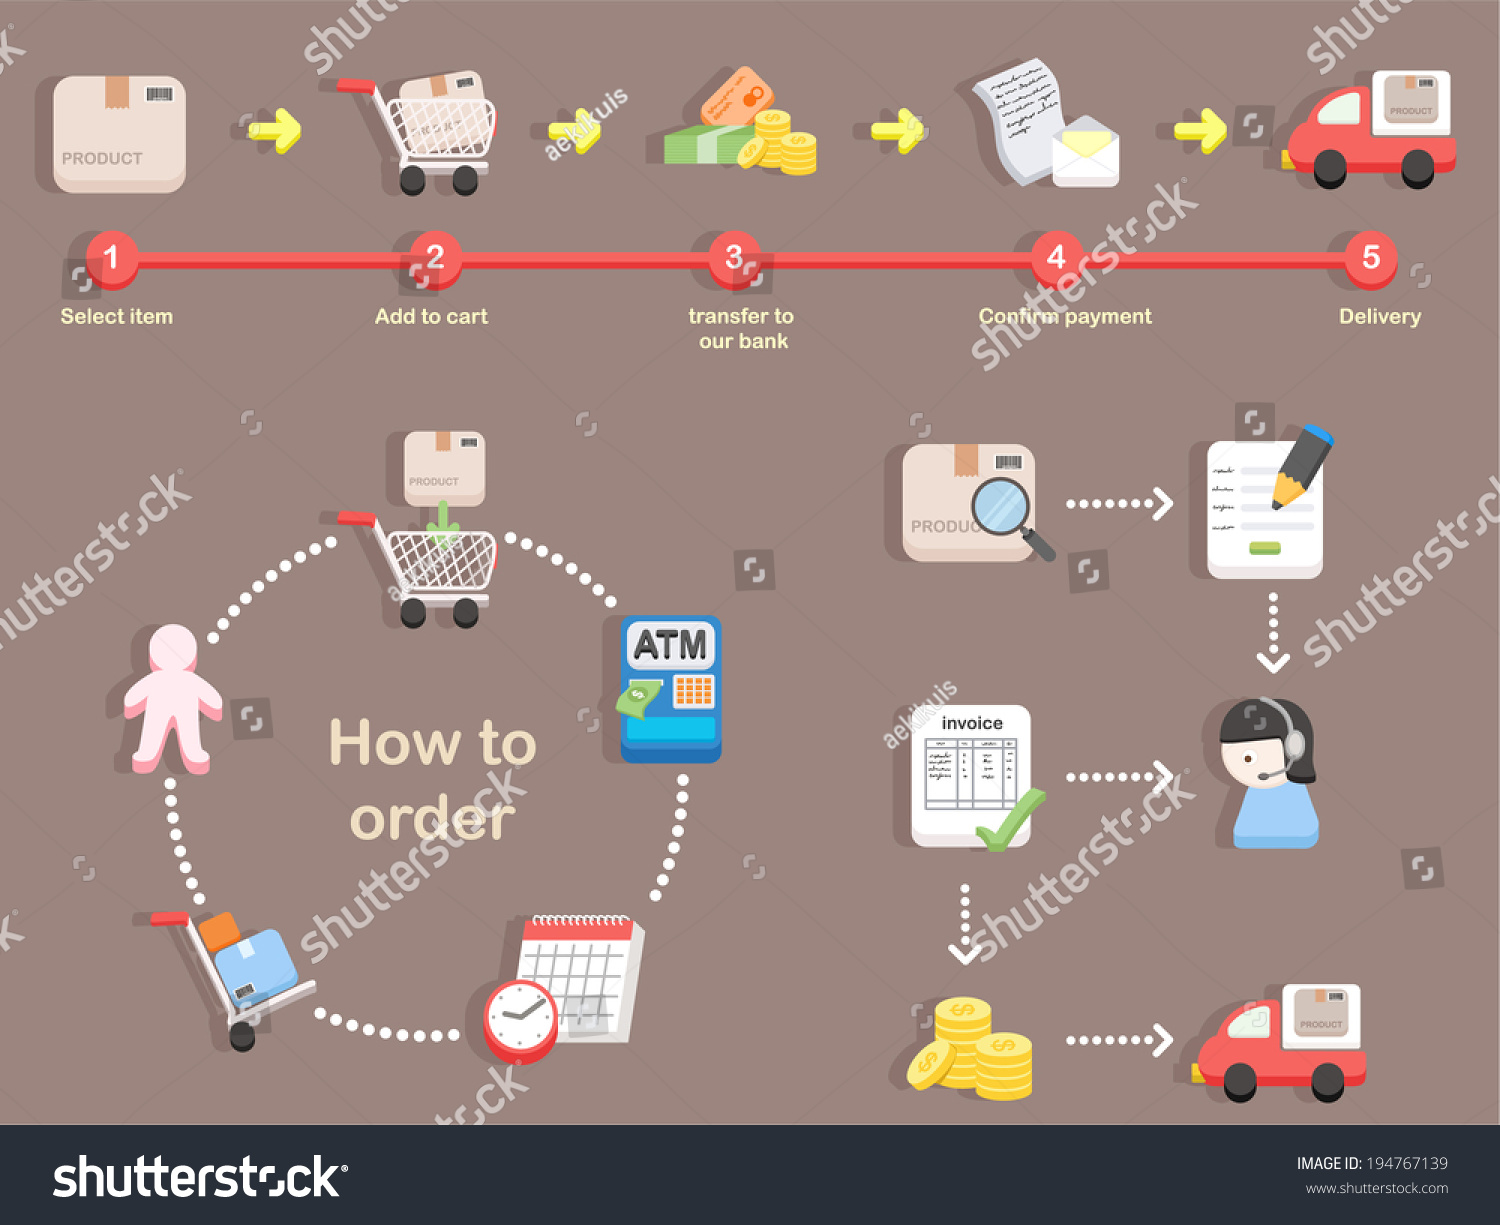 How To Order Shopping Process Of Purchasing